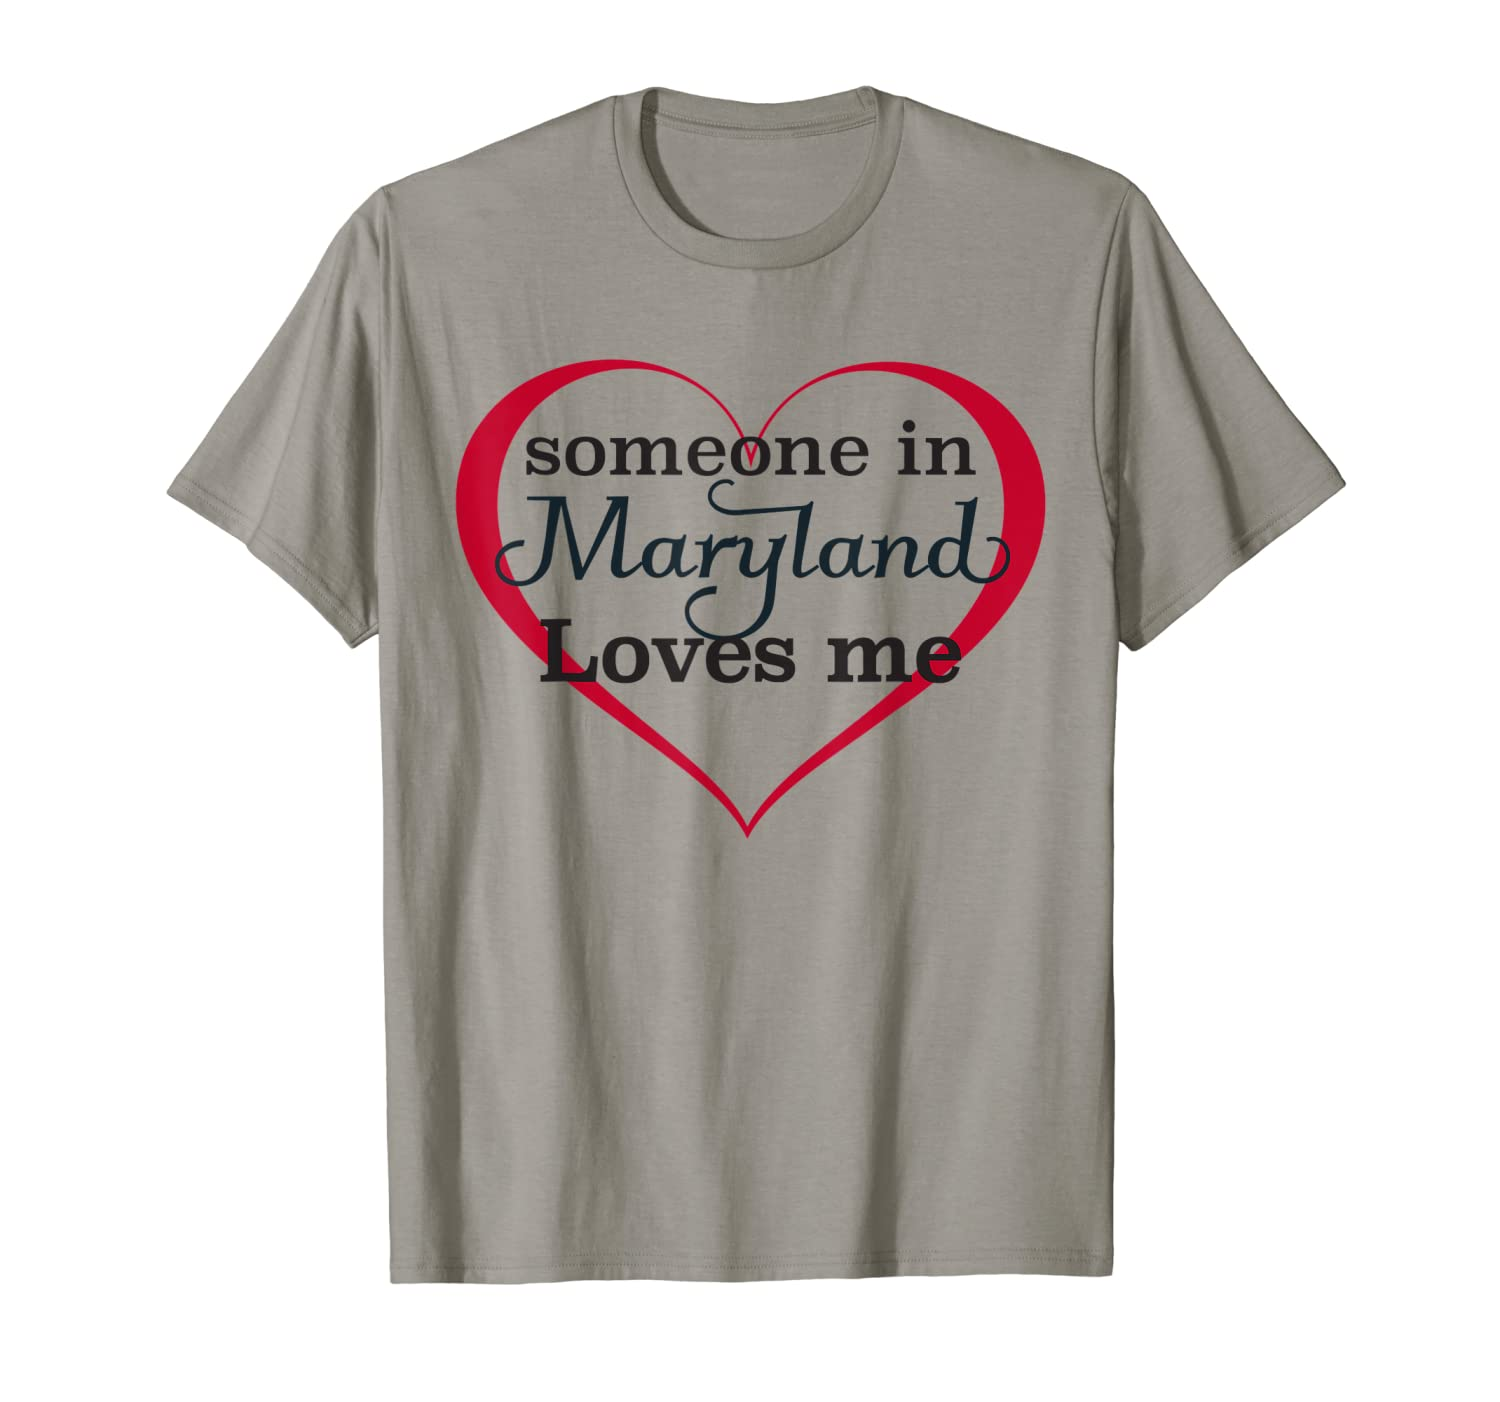 Someone in Maryland Loves Me - T-Shirt   Gift Kids Adults-ANZ